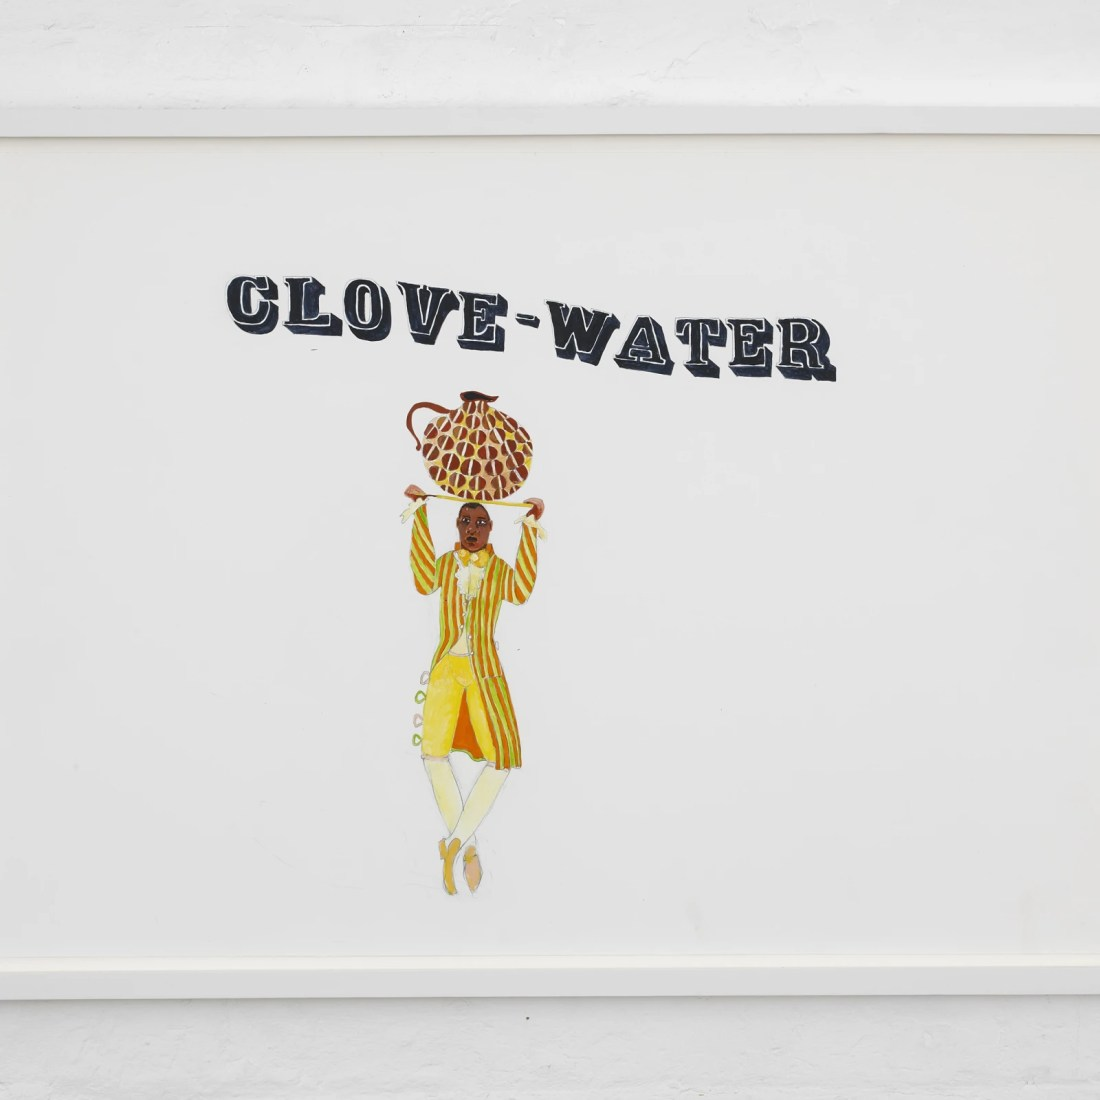 Lubaina Himid, Untitled, 2010, Acrylic and Pencil on Paper. Courtesy the Artist and Hollybush Gardens, Photo: Andy Keate.